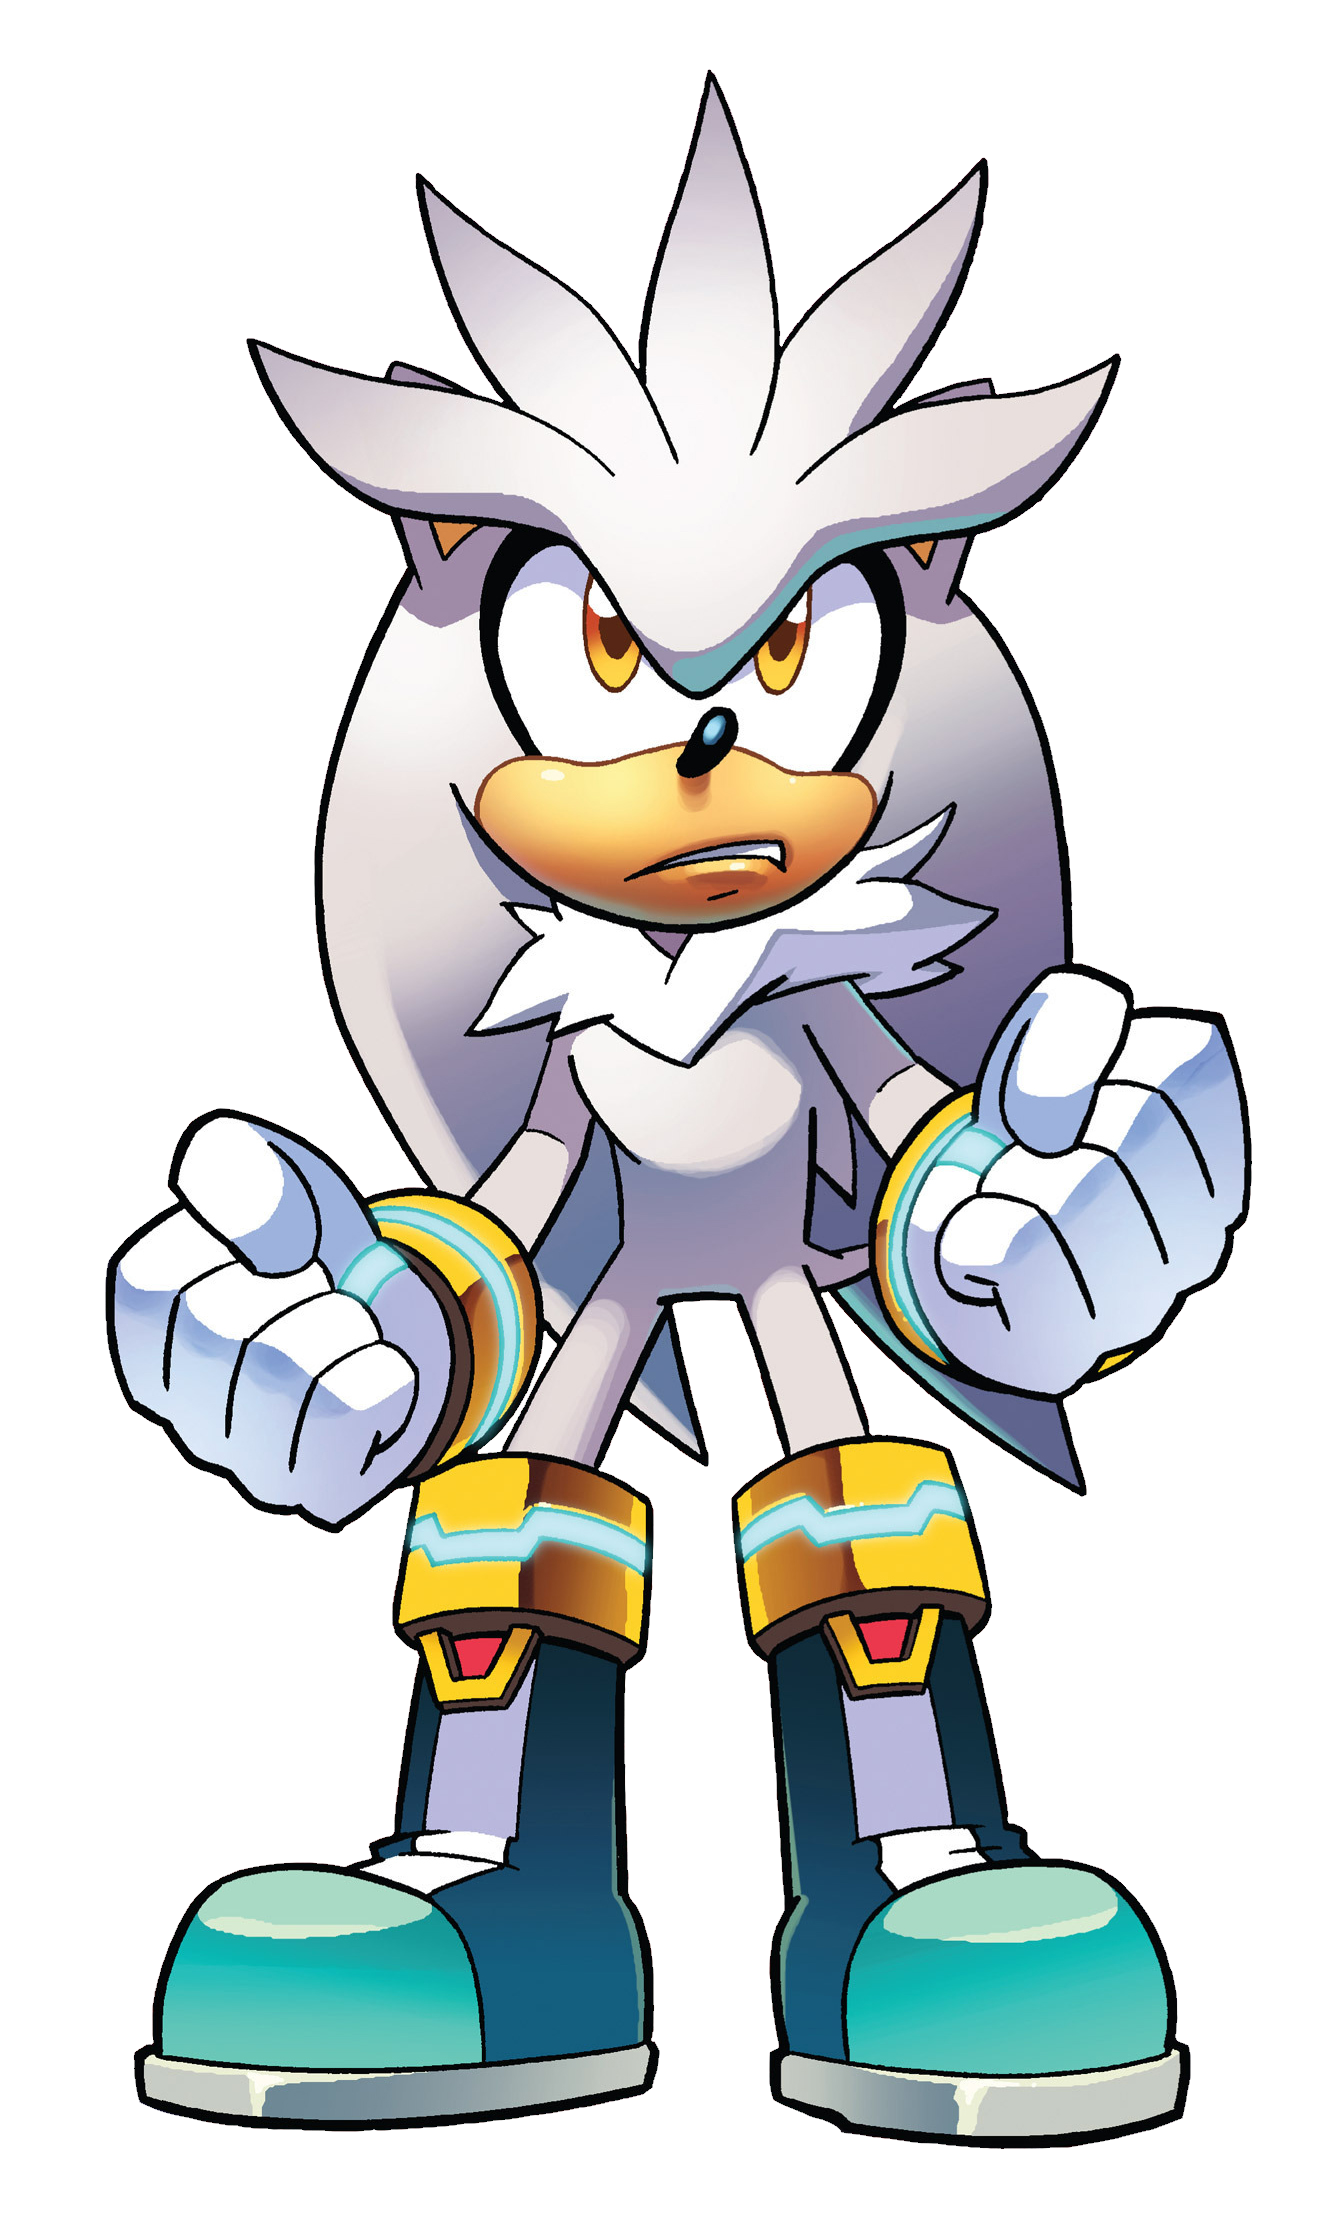 Hedgehog clipart comic. Silver the archie sonic